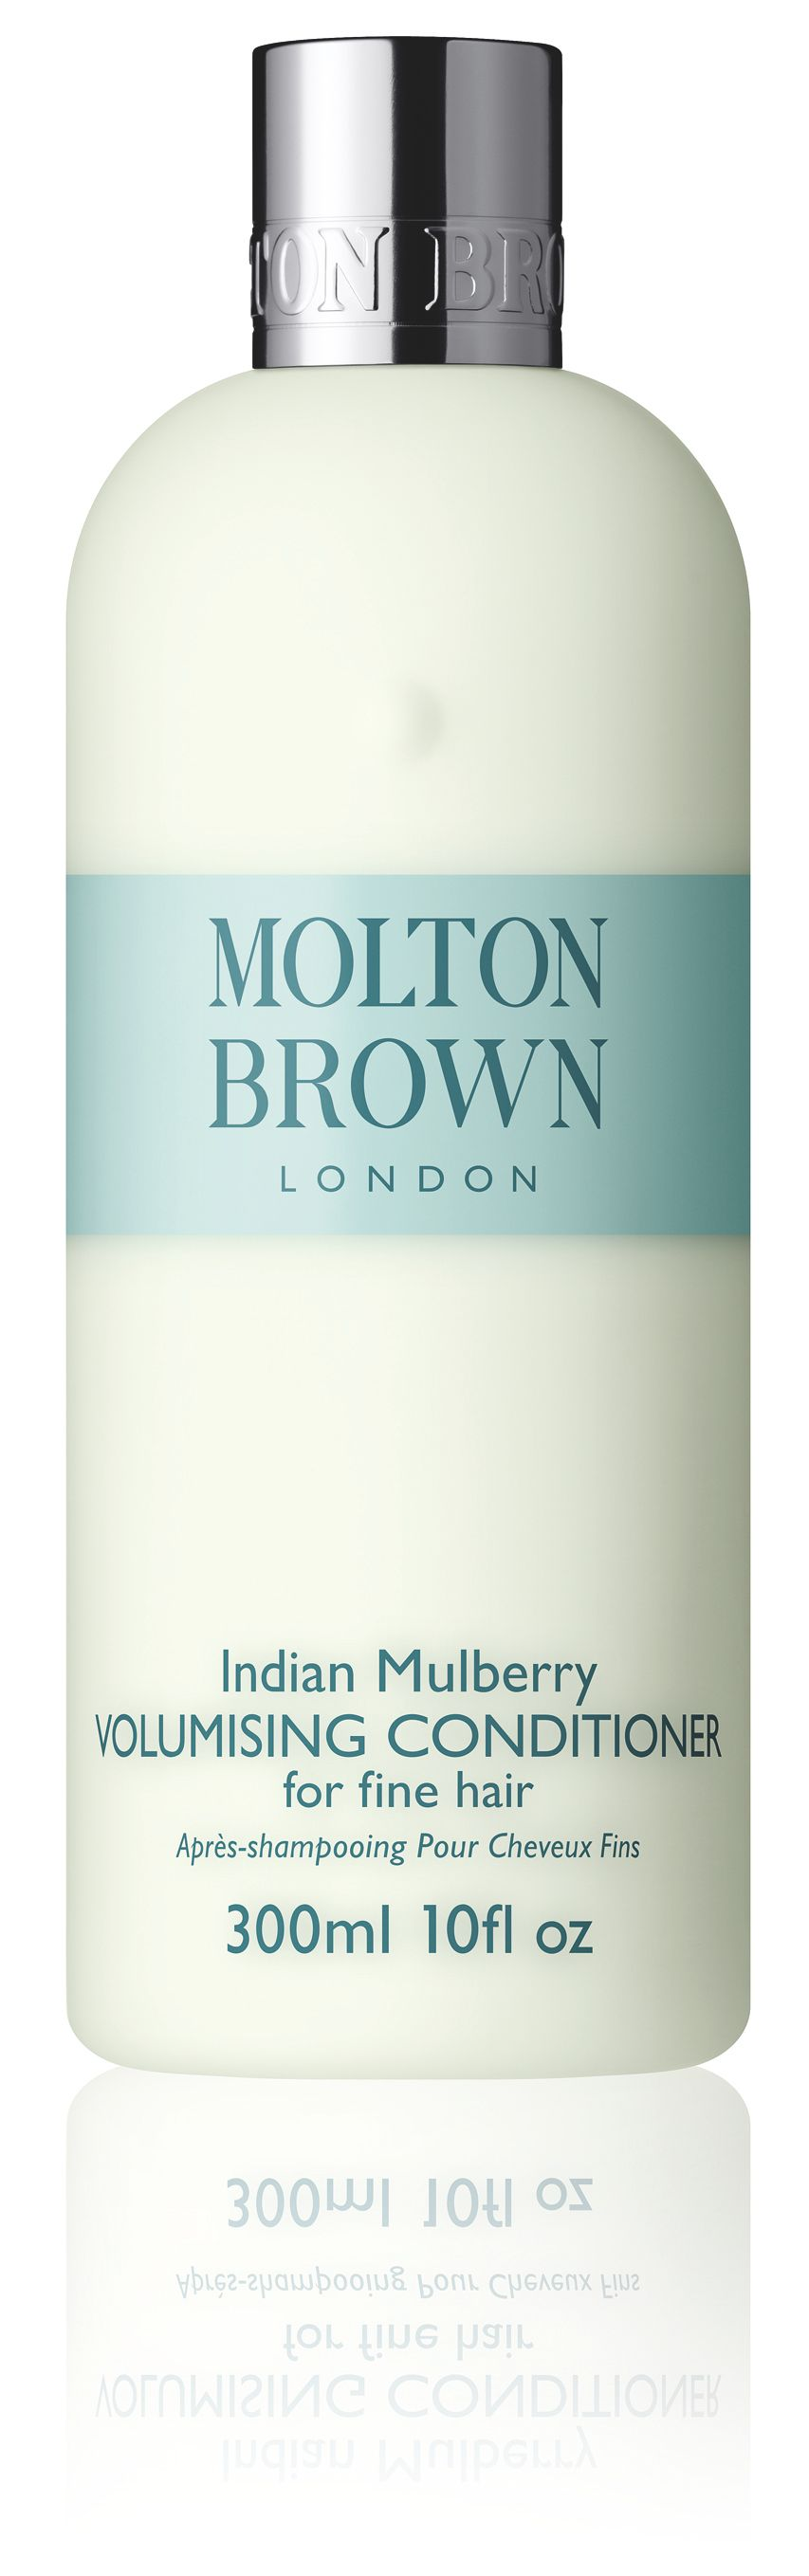 Indian Mulberry Volume Conditioner